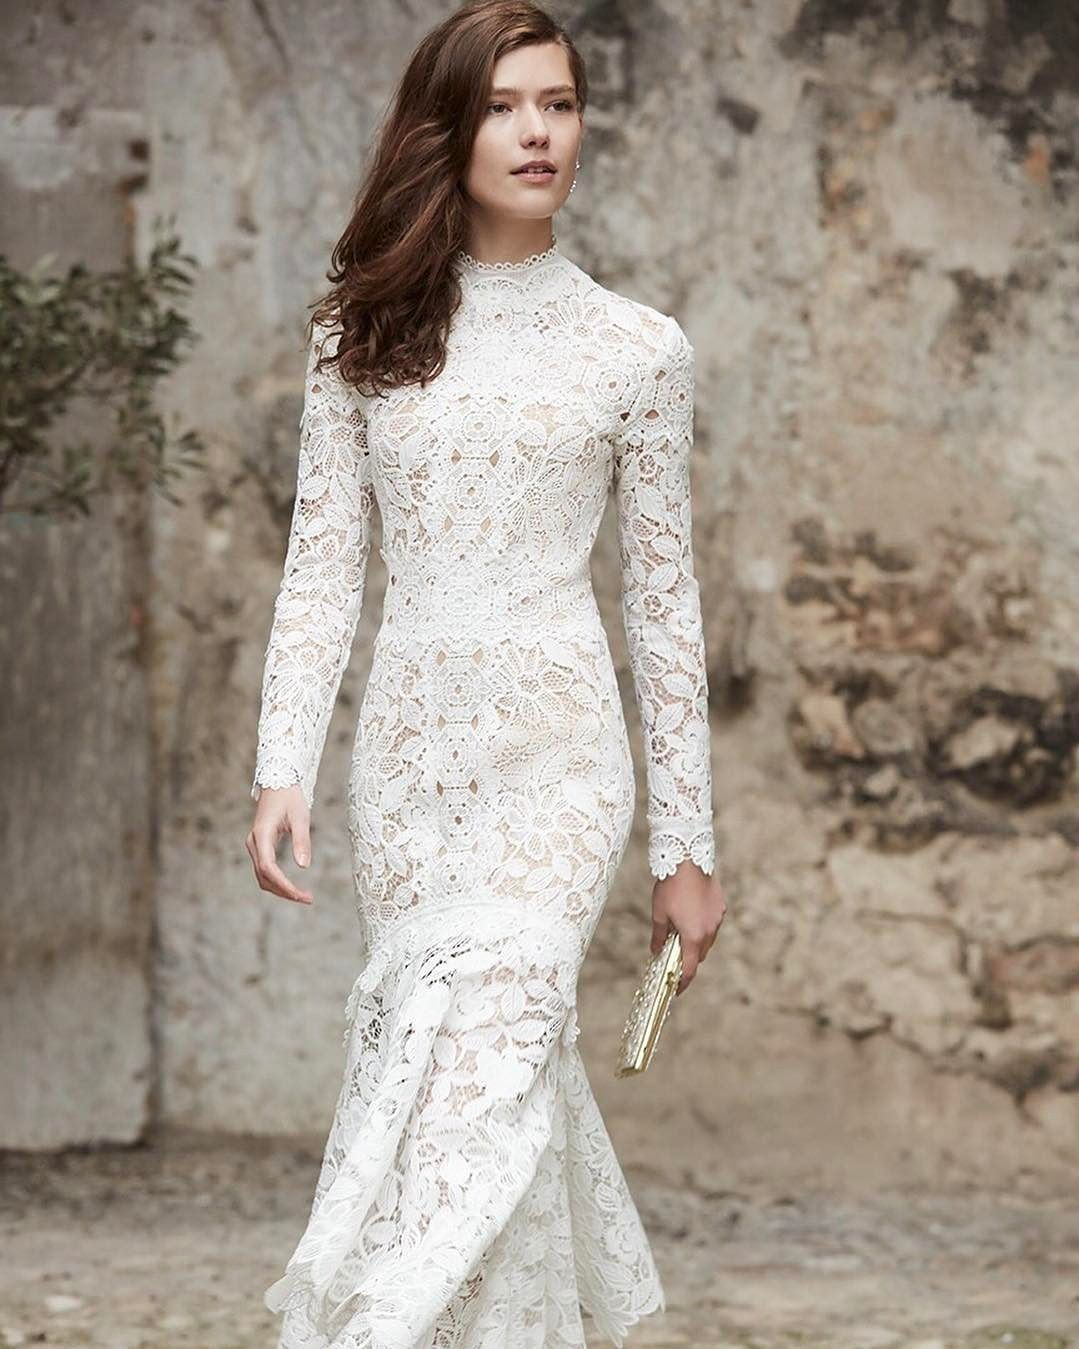 Runway inspired looks for your walk down the aisle (link in bio to ...